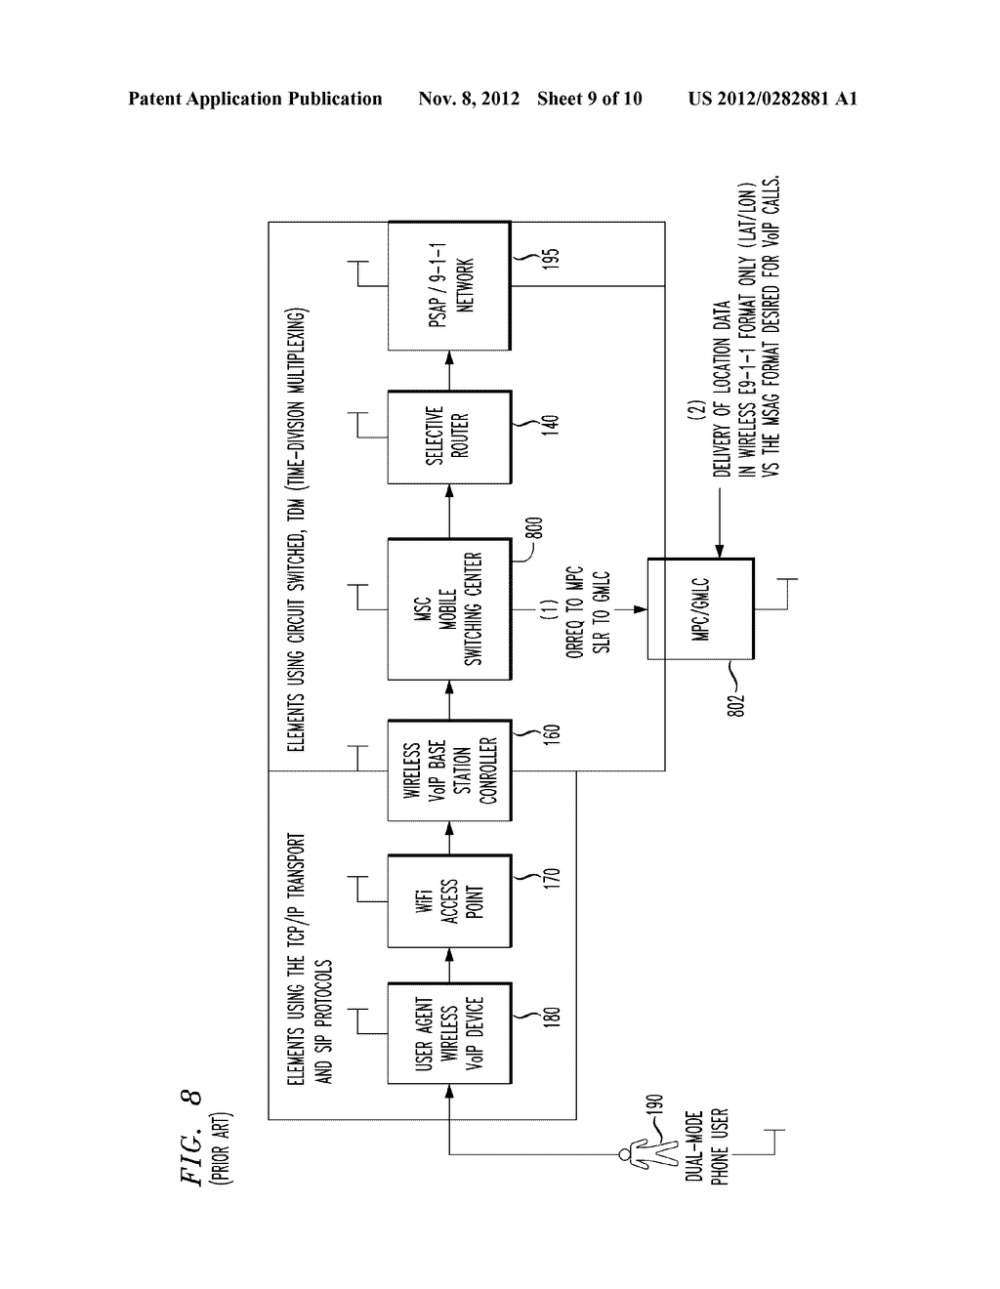 medium resolution of ss7 ansi 41 to sip based call signaling conversion gateway for wireless voip e911 diagram schematic and image 10